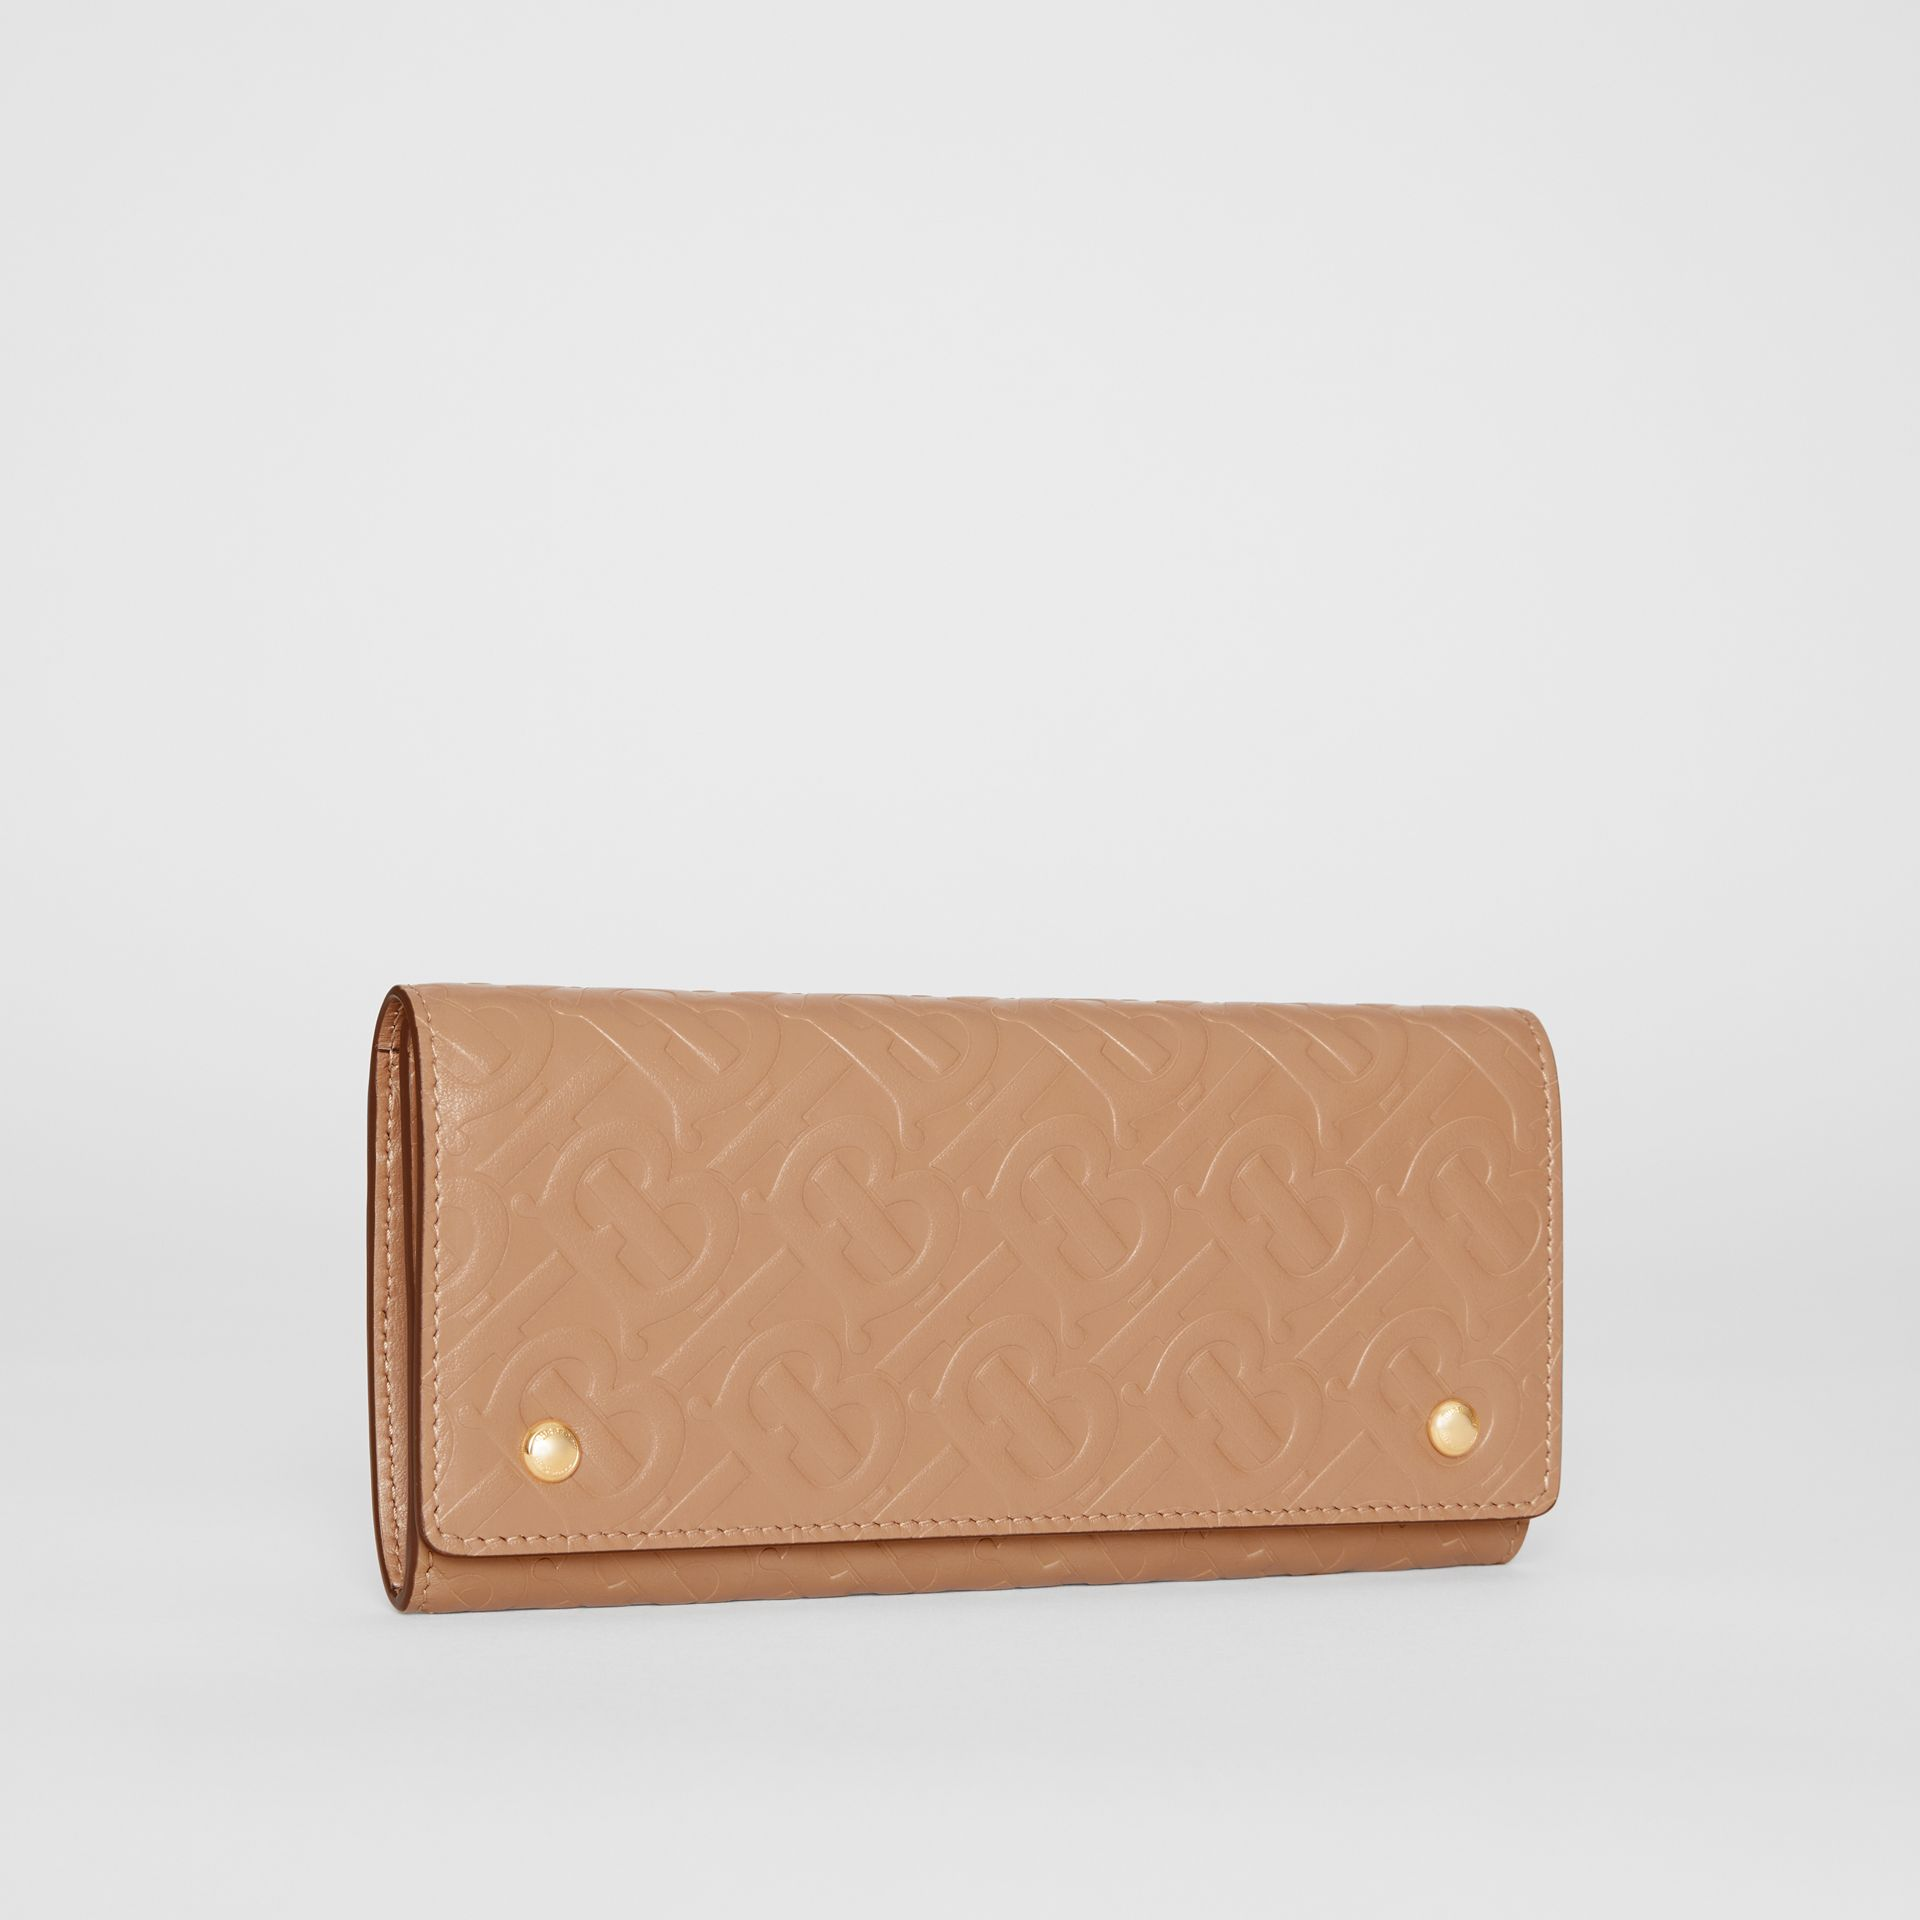 Portefeuille continental en cuir Monogram (Camel Clair) - Femme | Burberry - photo de la galerie 4